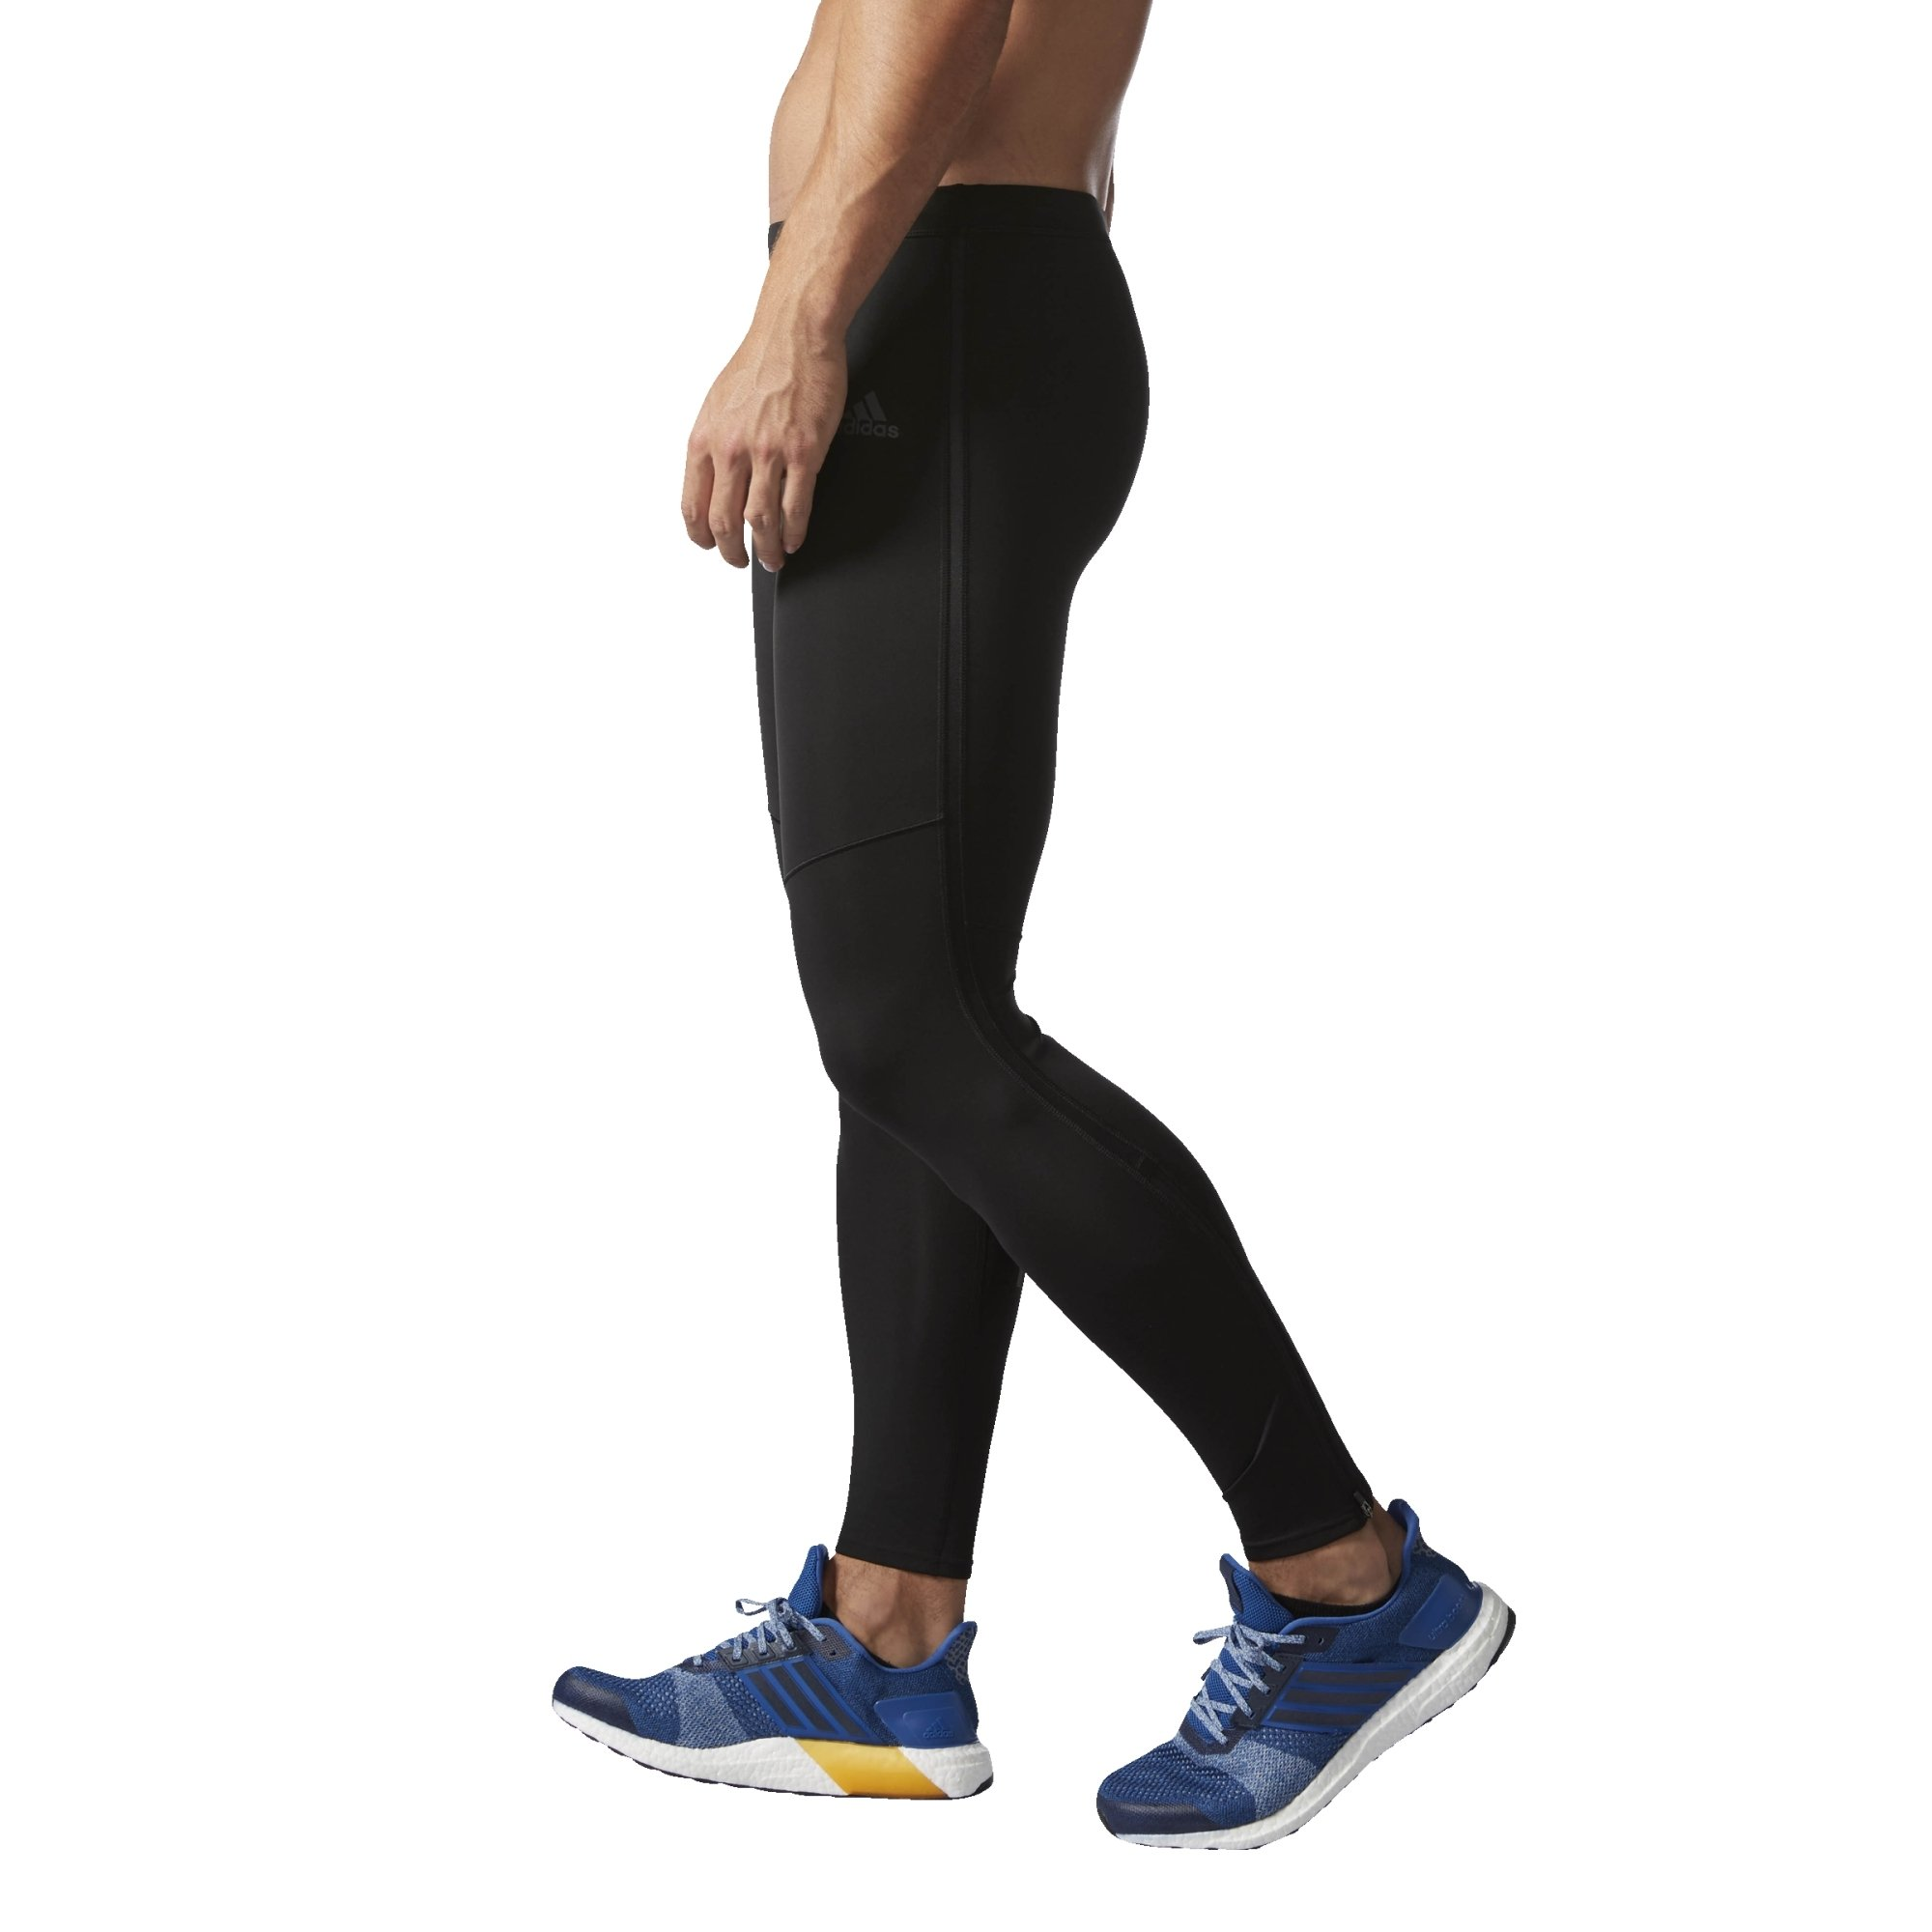 adidas Men's Running Response Long Tights, Black, Large by adidas (Image #5)